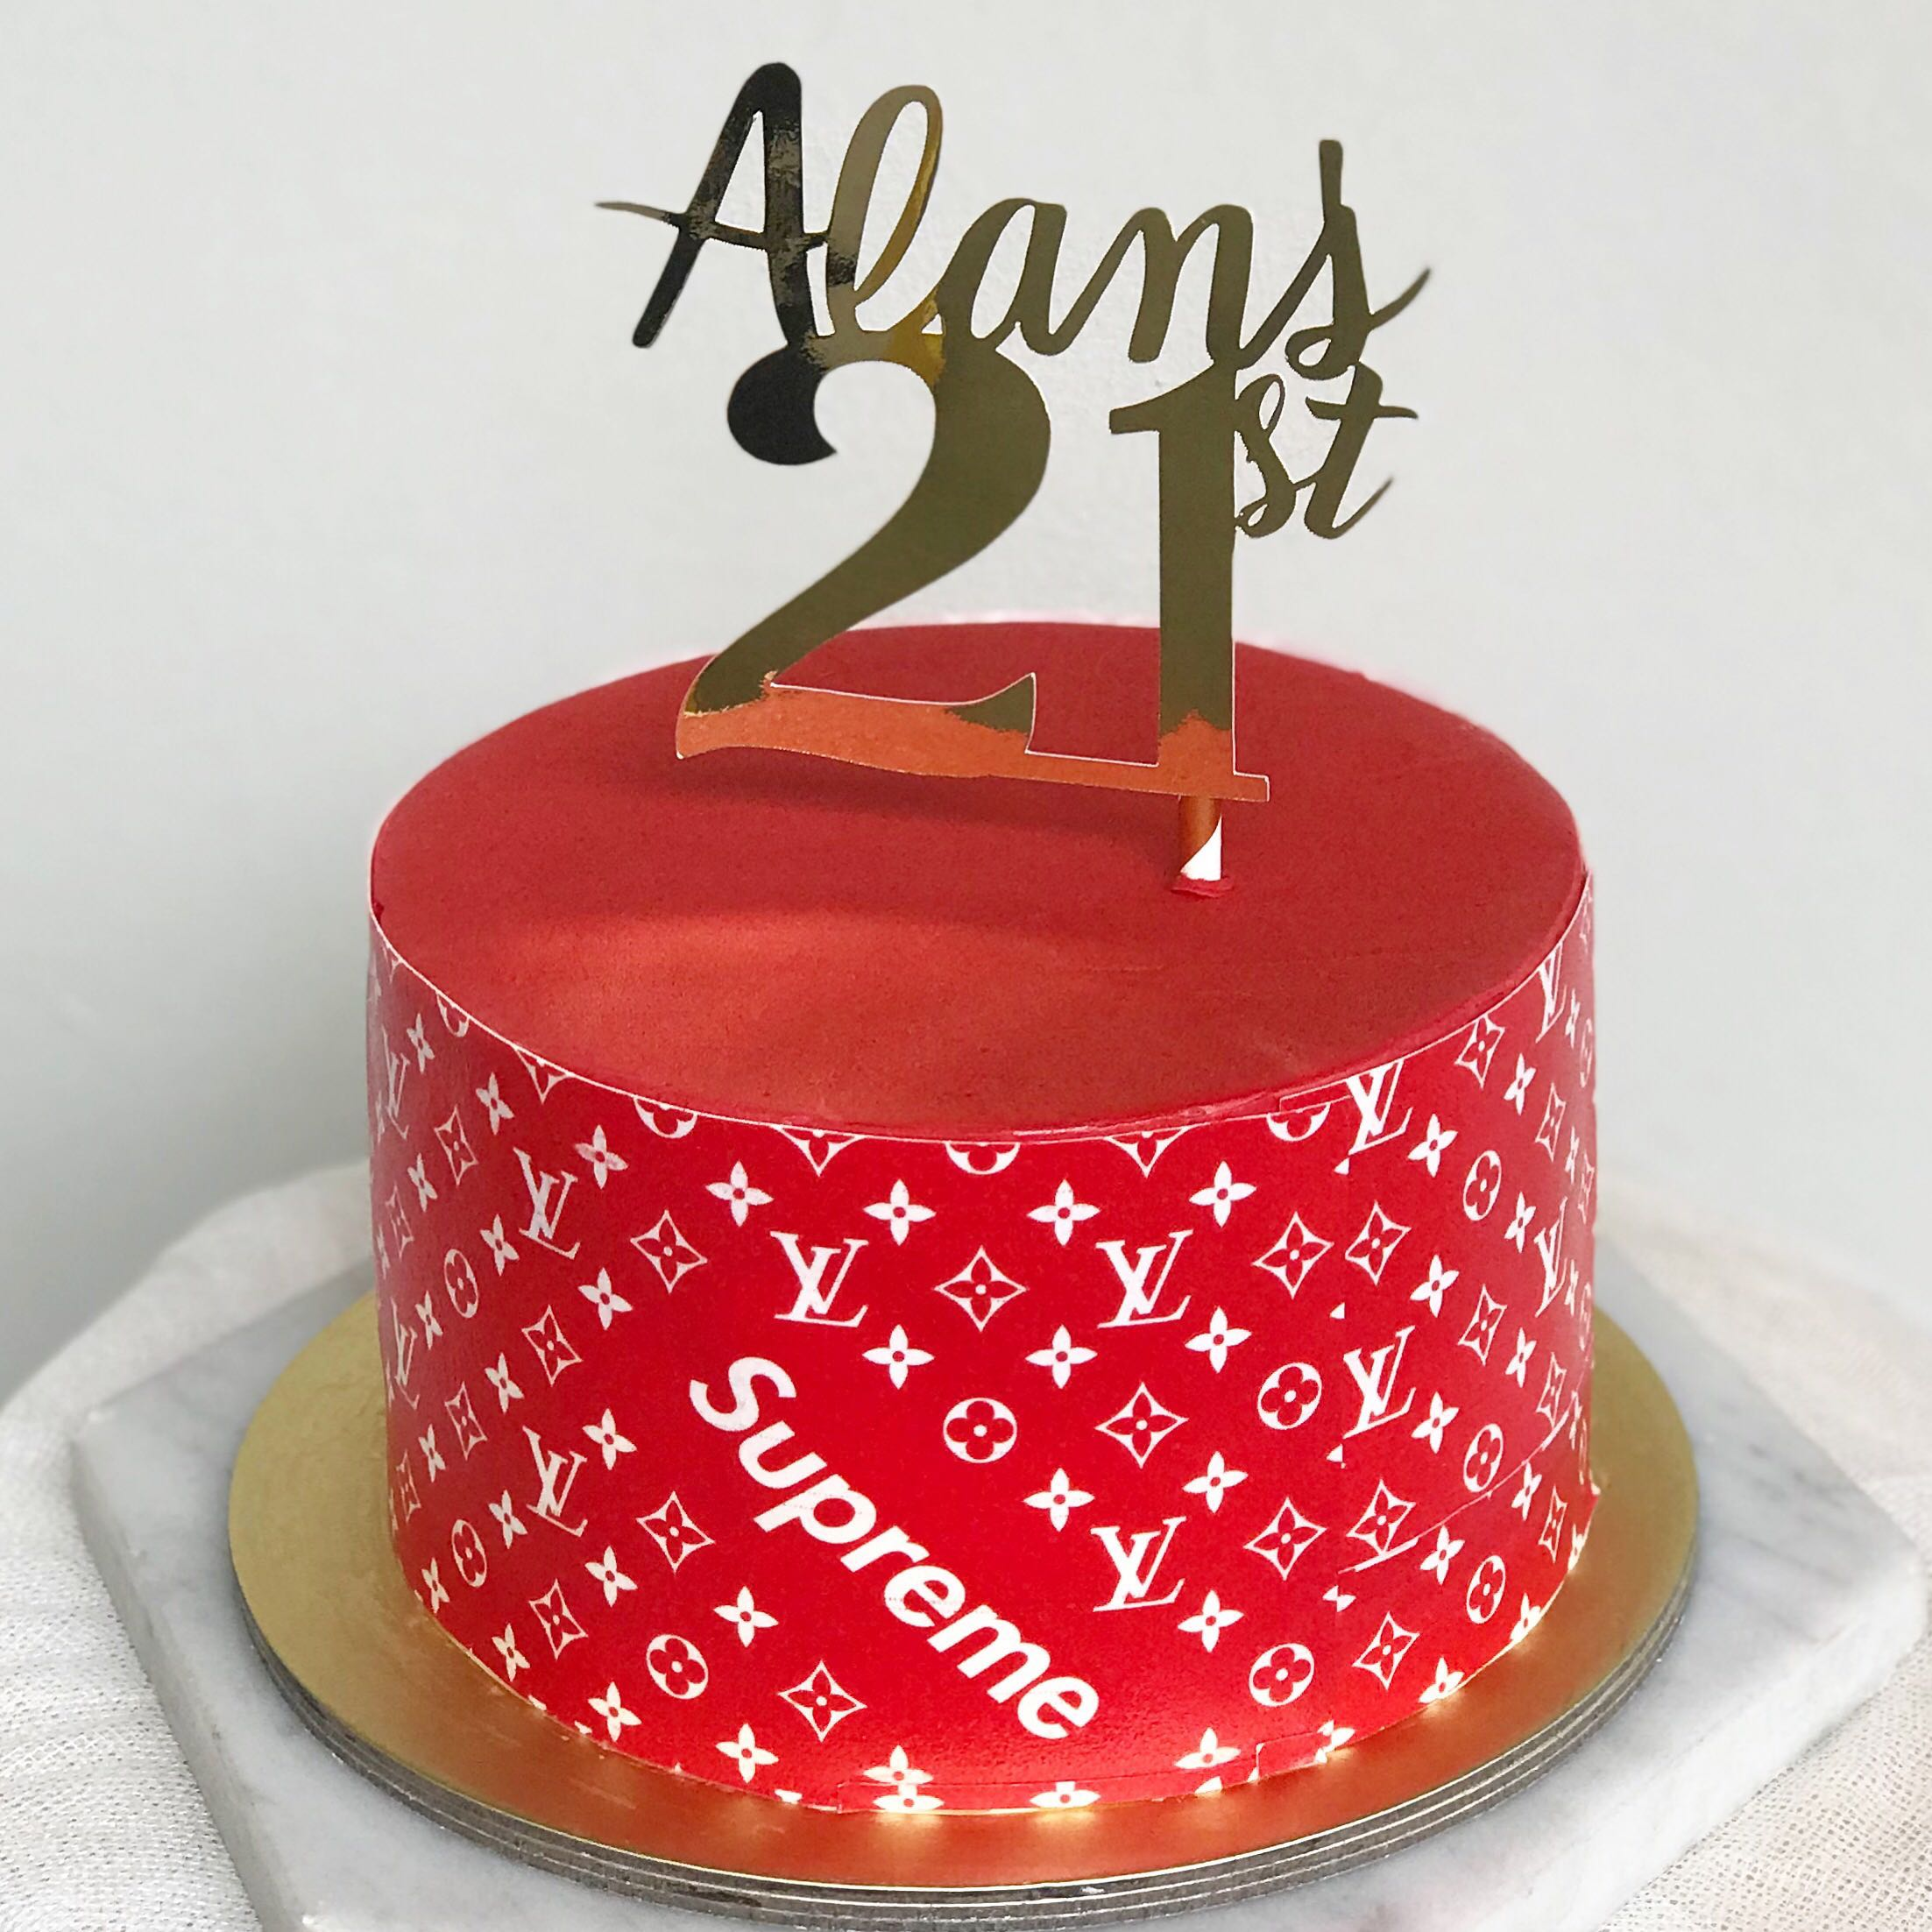 Louis Vuitton x Supreme Cake, Food   Drinks, Baked Goods on Carousell ad463c2f7e8